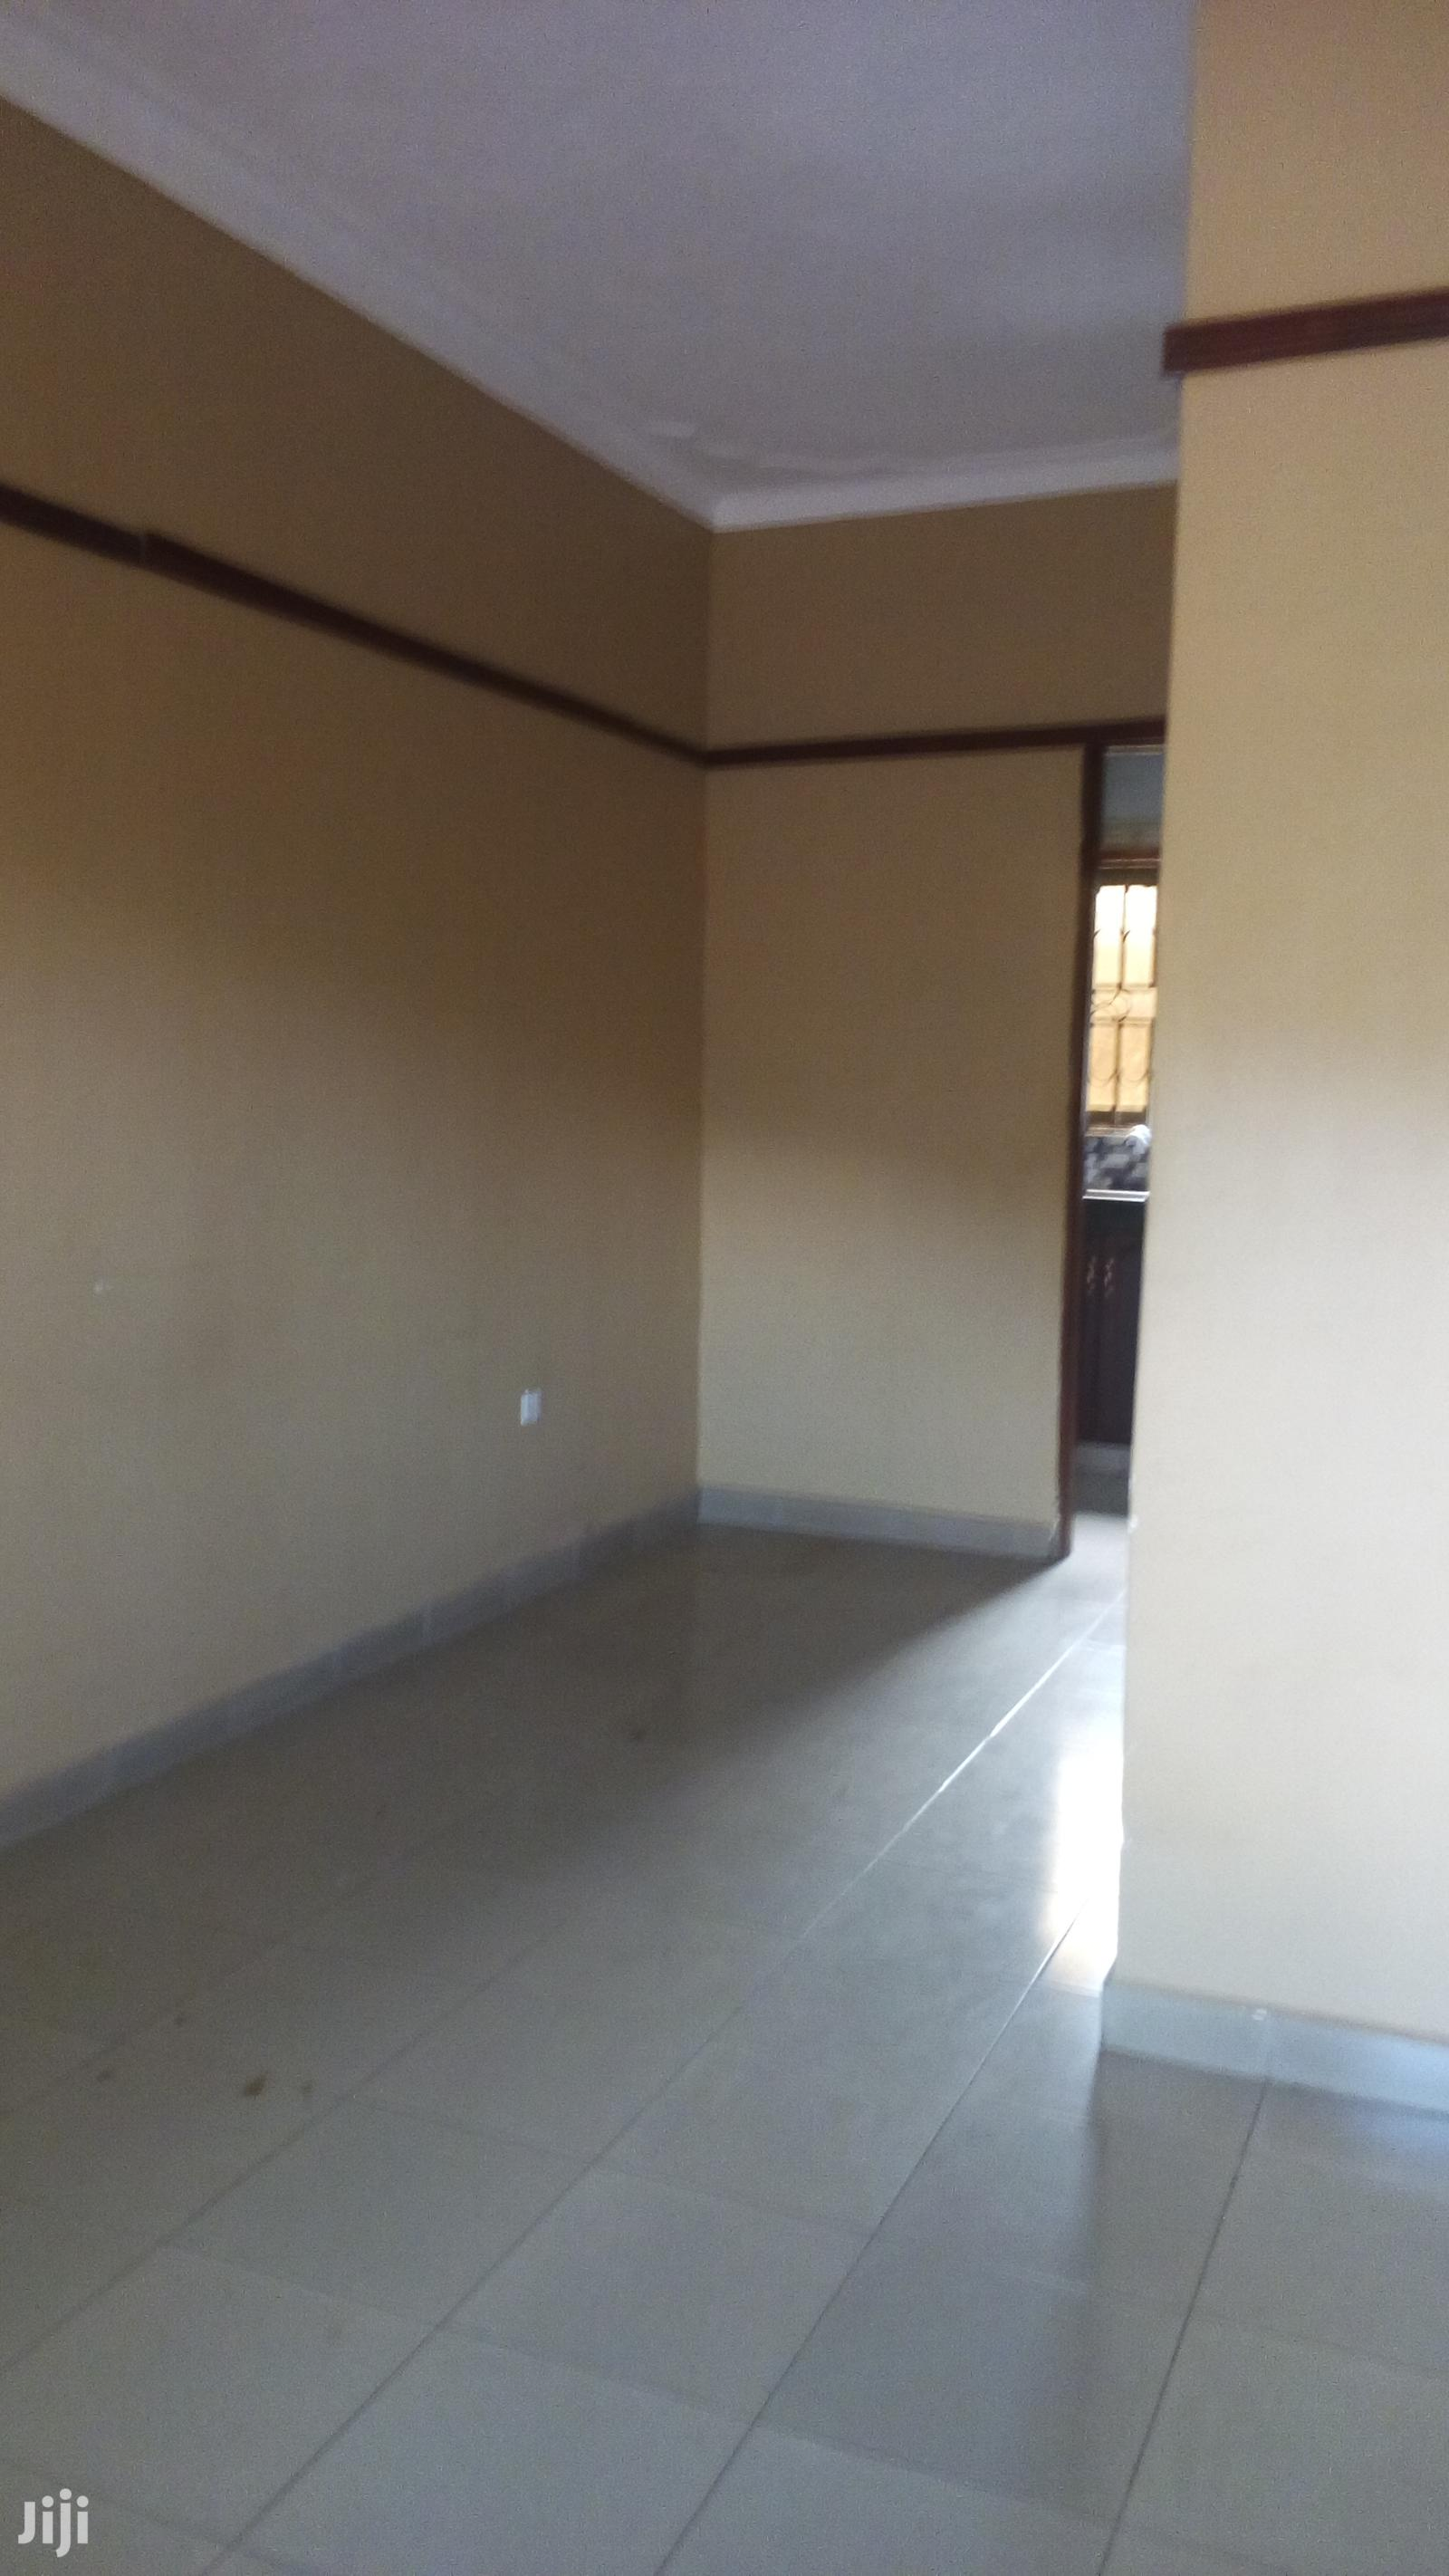 2bedroom House For Rent In Bweyogerere Self Contained Next To Main | Houses & Apartments For Rent for sale in Kampala, Central Region, Uganda